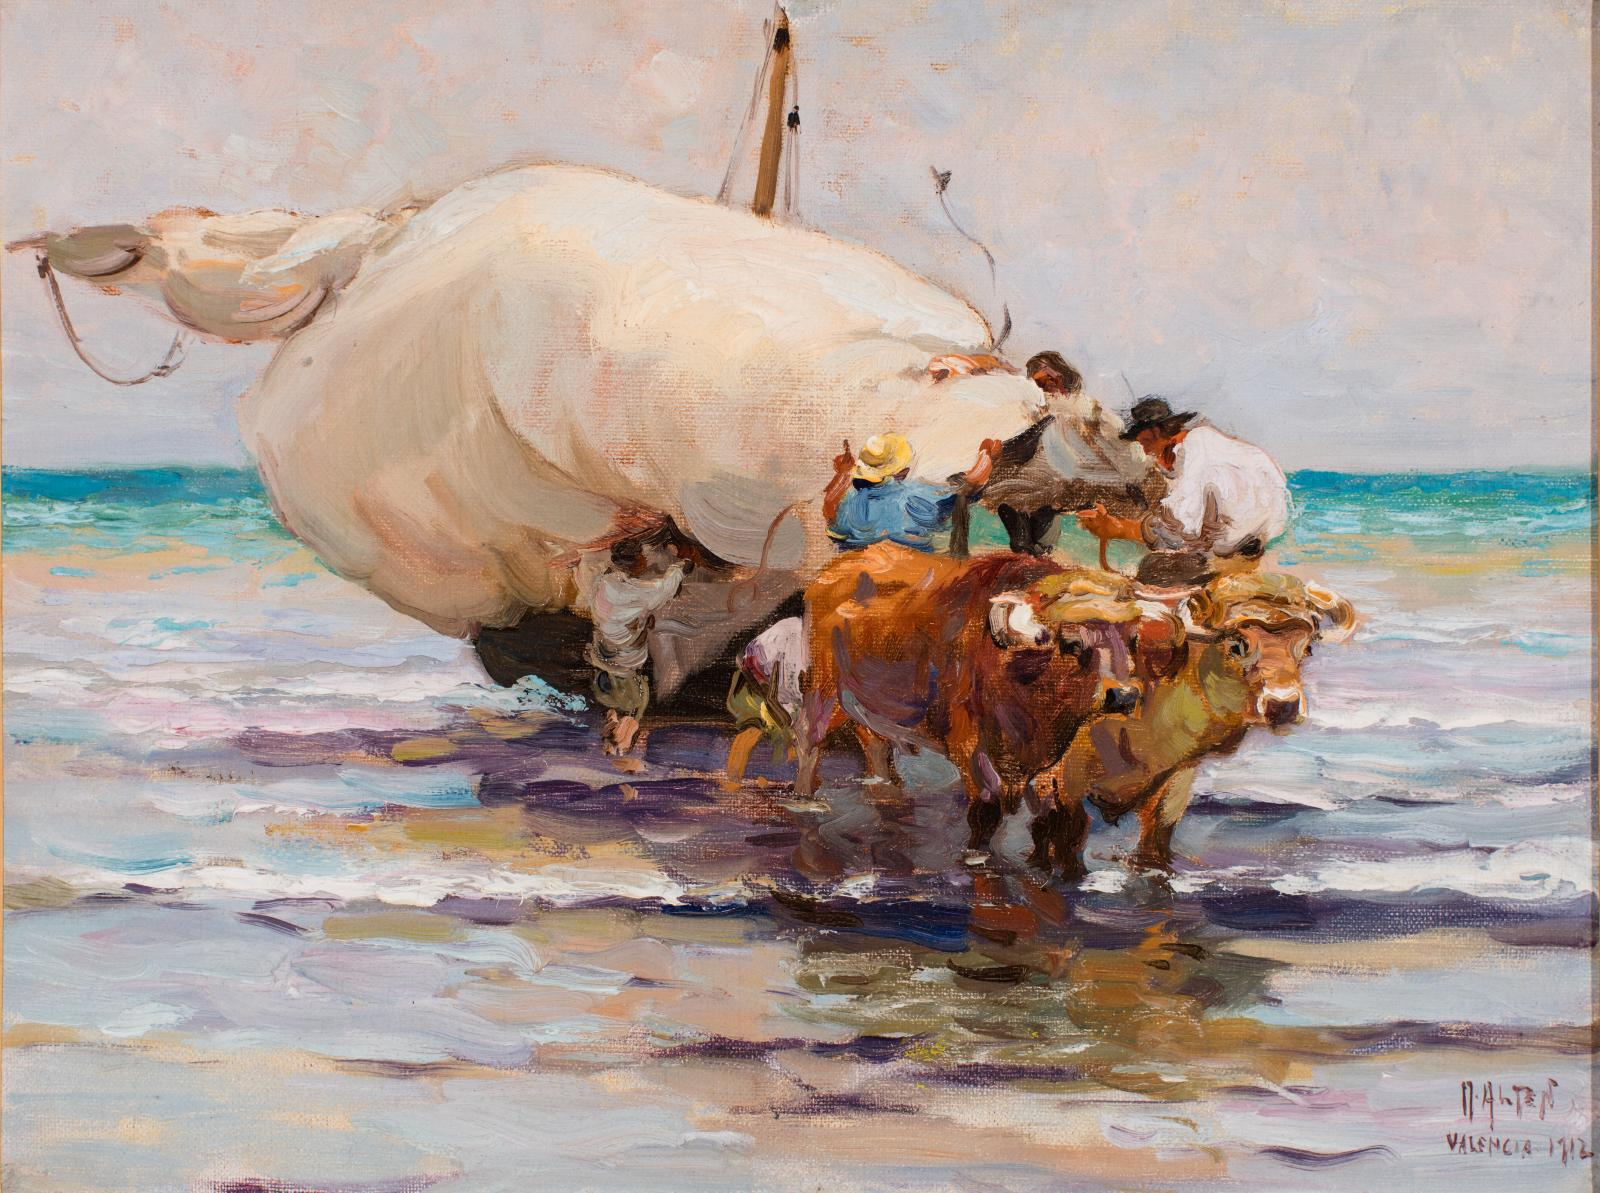 Two oxen pulling a boat onto a shoreline with people at the boat holding the sail.